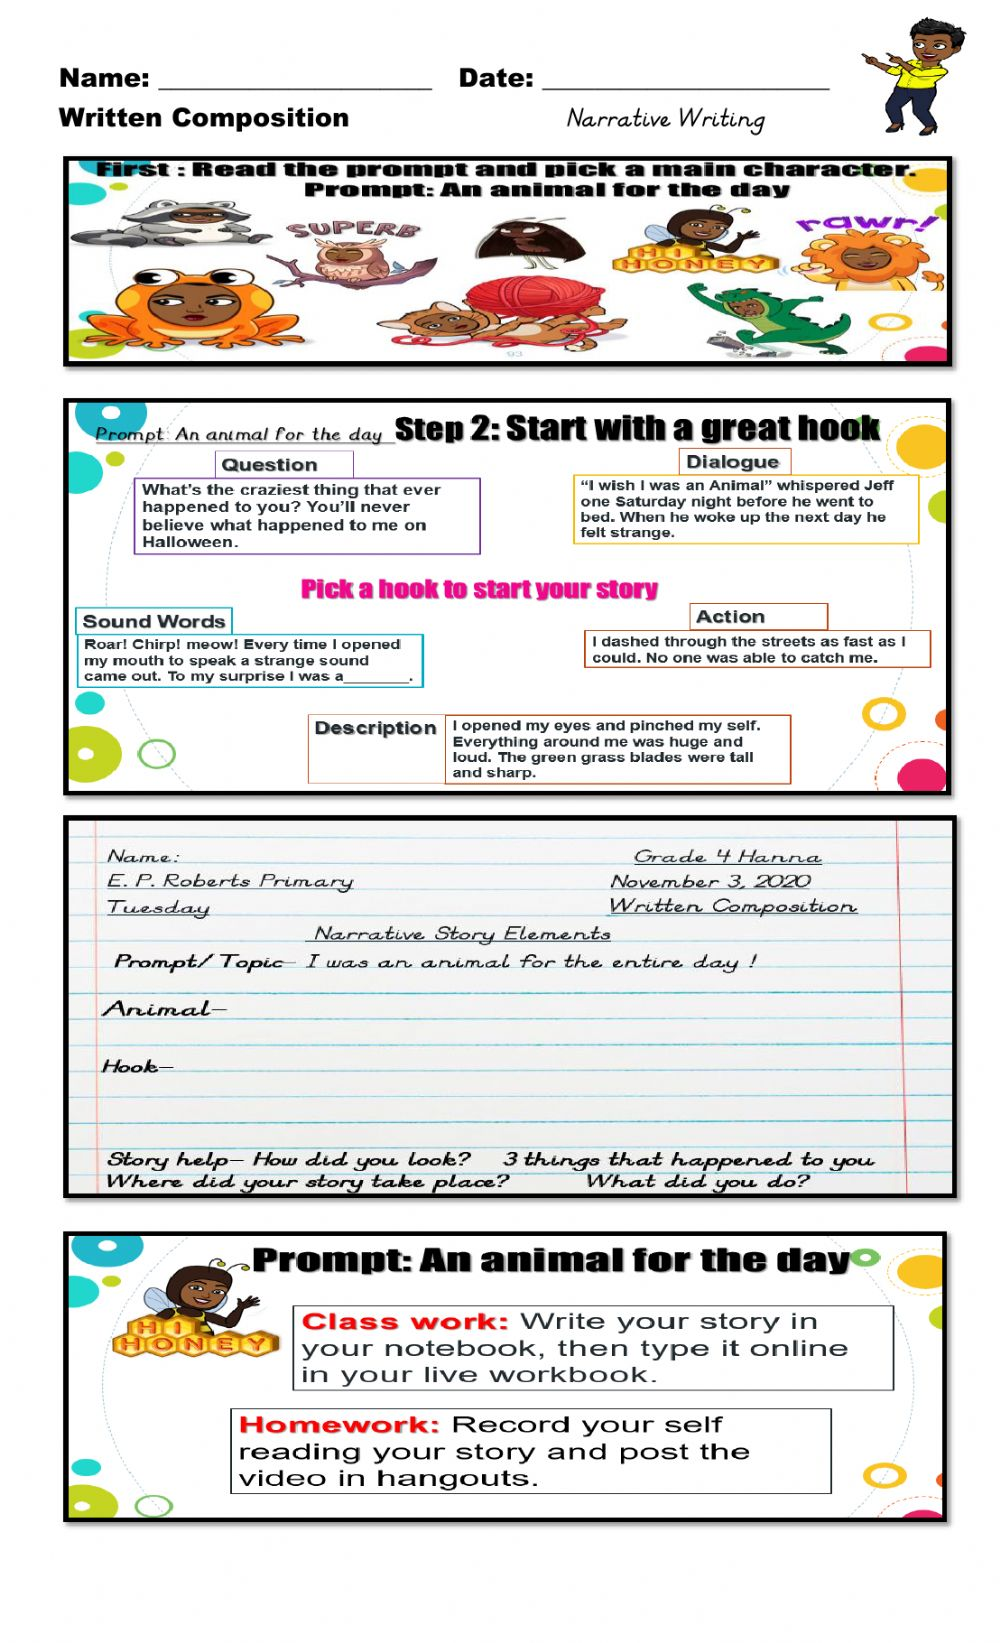 medium resolution of Narrative Writing: You are an animal for the Day worksheet